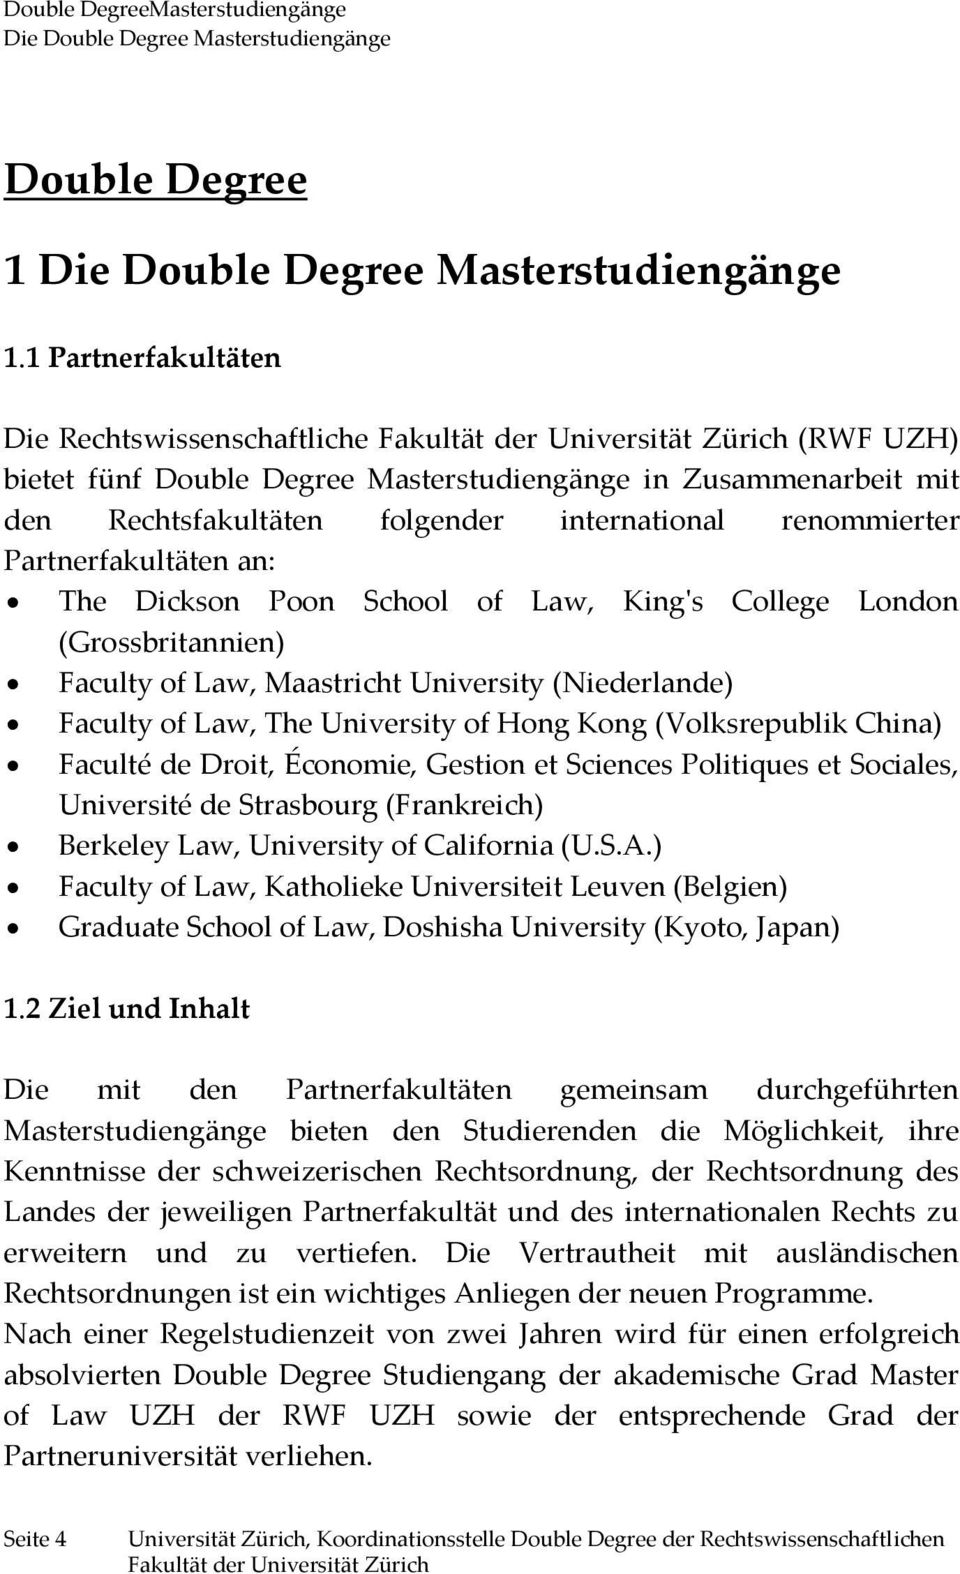 Partnerfakultäten an: The Dickson Poon School of Law, King's College London (Grossbritannien) Faculty of Law, Maastricht University (Niederlande) Faculty of Law, The University of Hong Kong